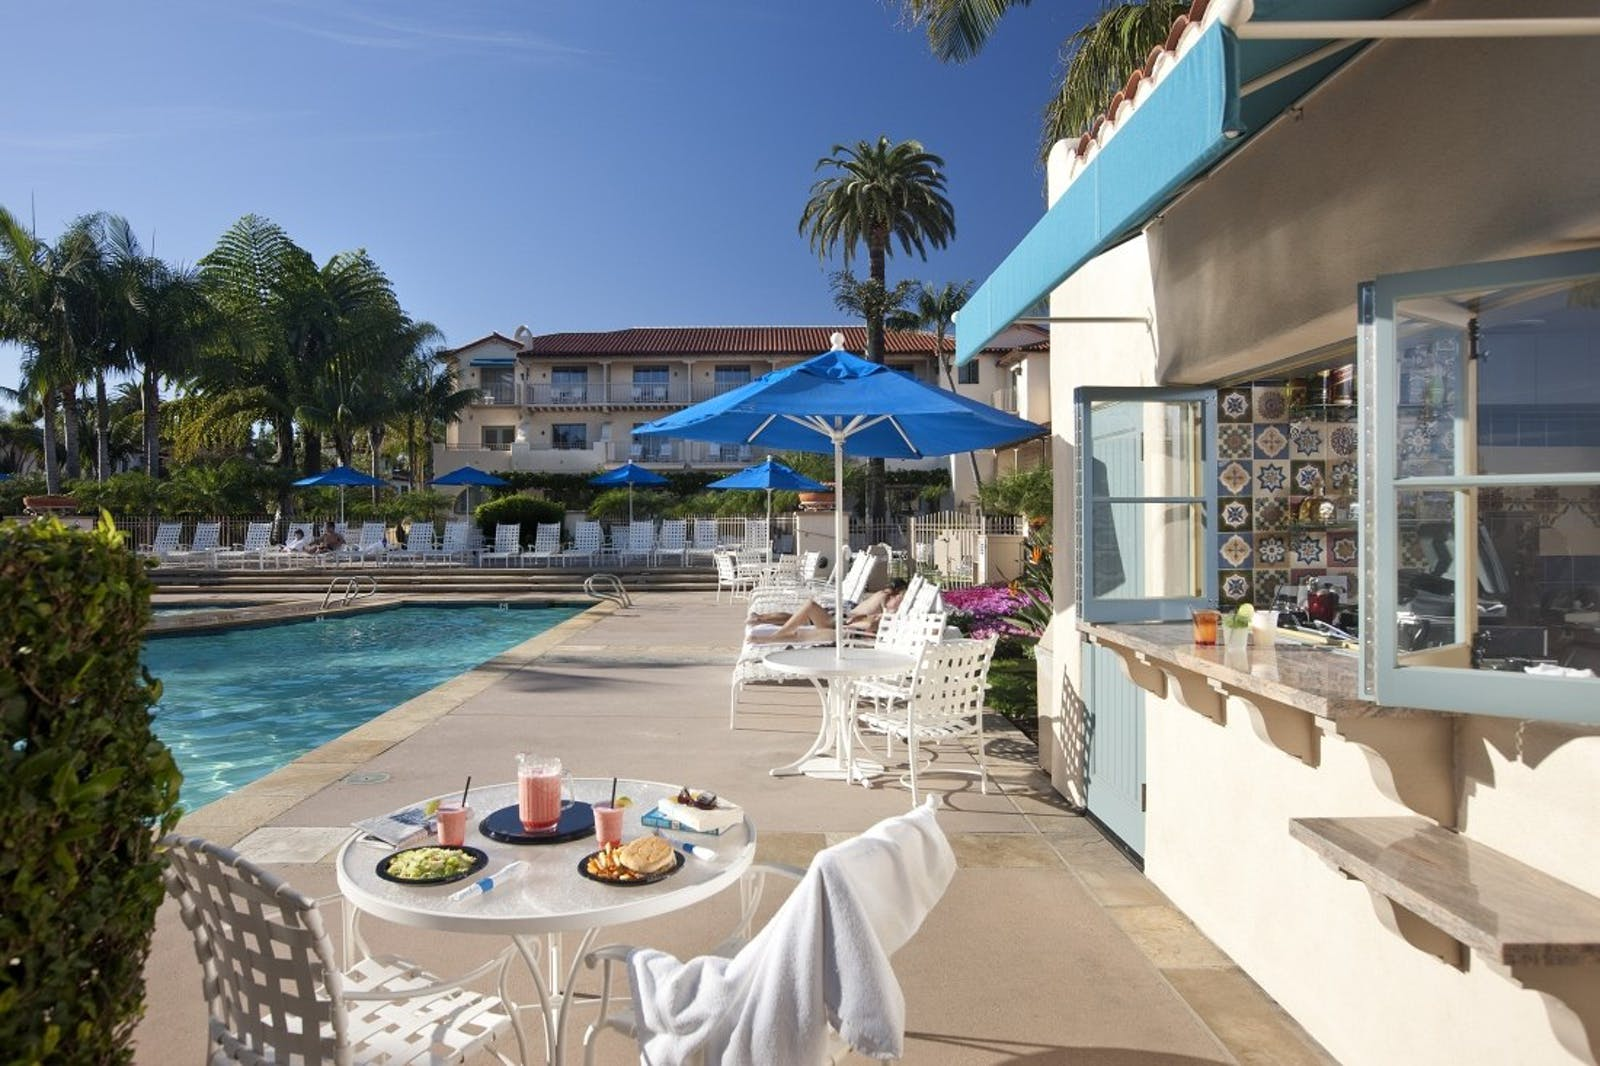 Pool side dining at Harbor View Inn